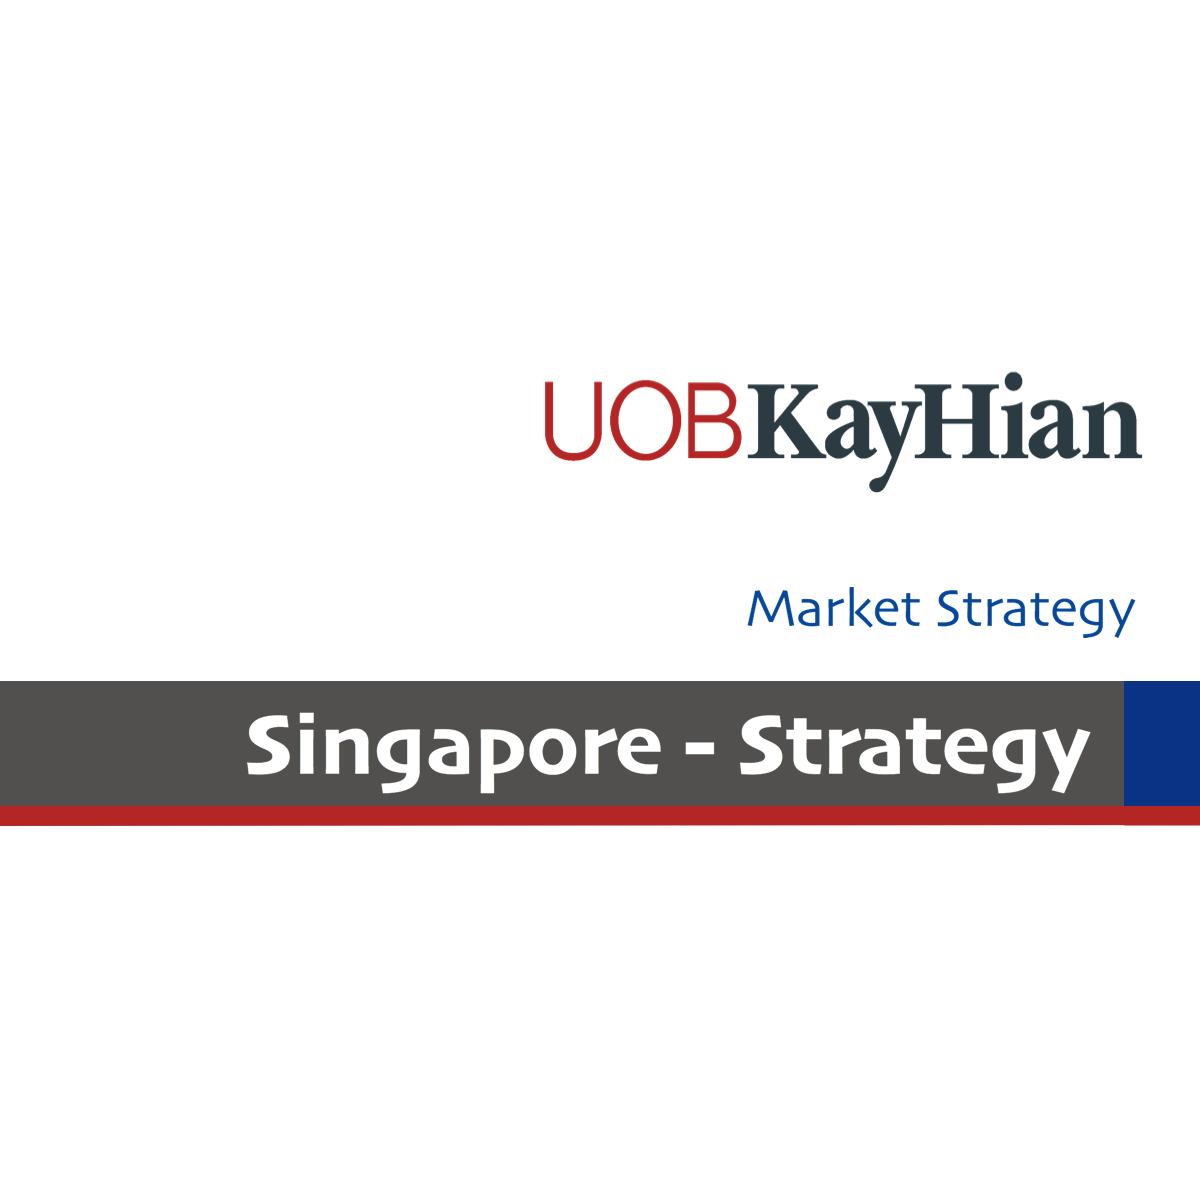 Singapore Stock Strategy - UOB Kay Hian Research | SGinvestors.io